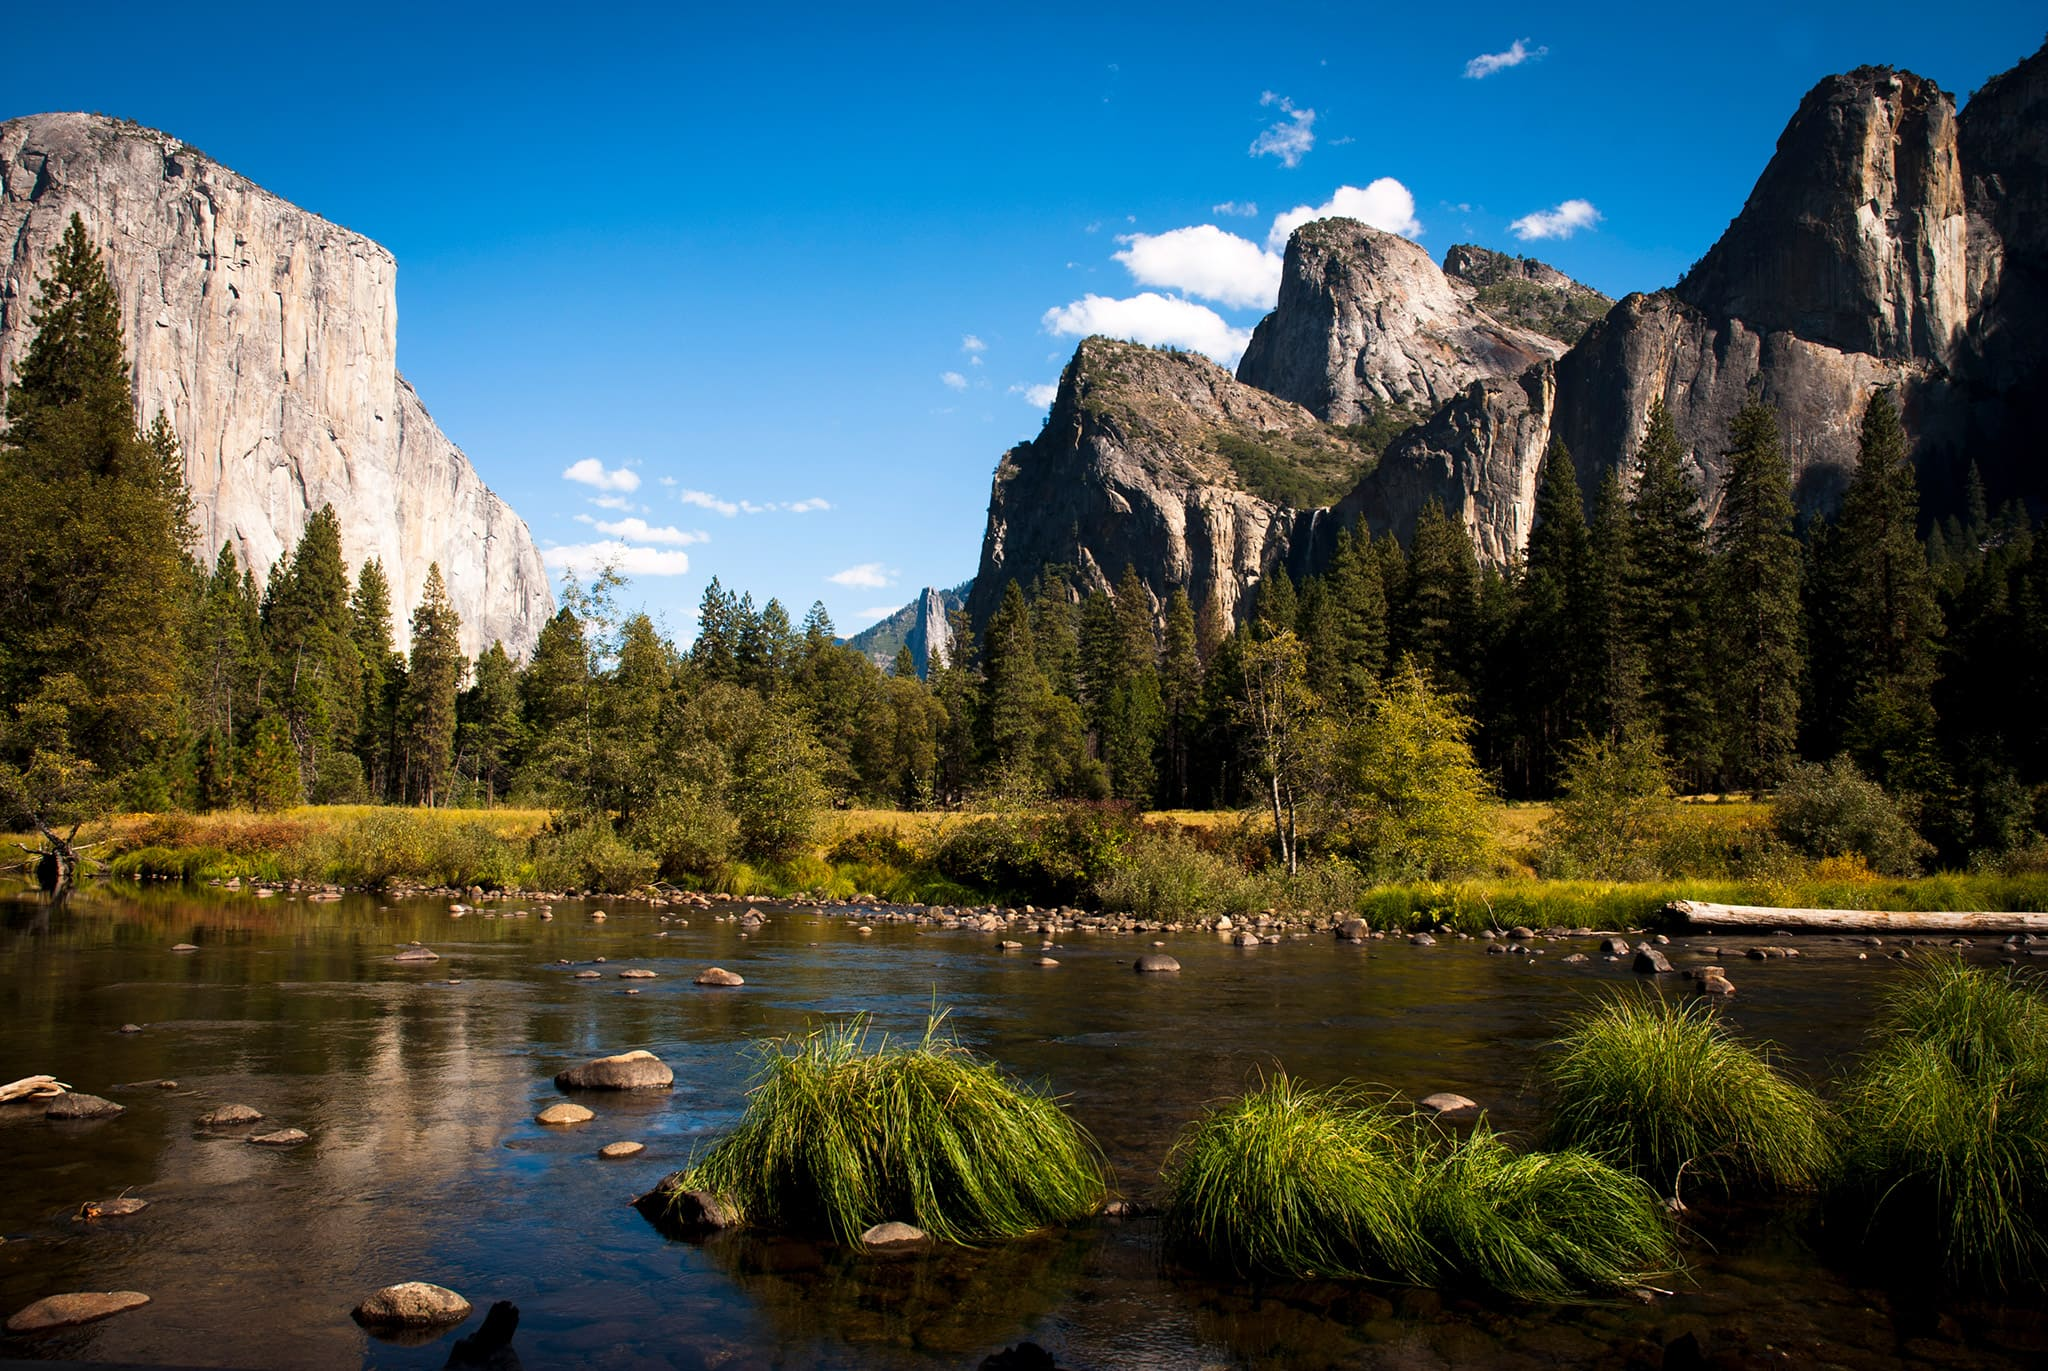 New York to Fresno CA (Yosemite National Park) or Vice Versa $175 RT Airfares on American Airlines Main Cabin (Flexible Ticket Travel September - December 2021)